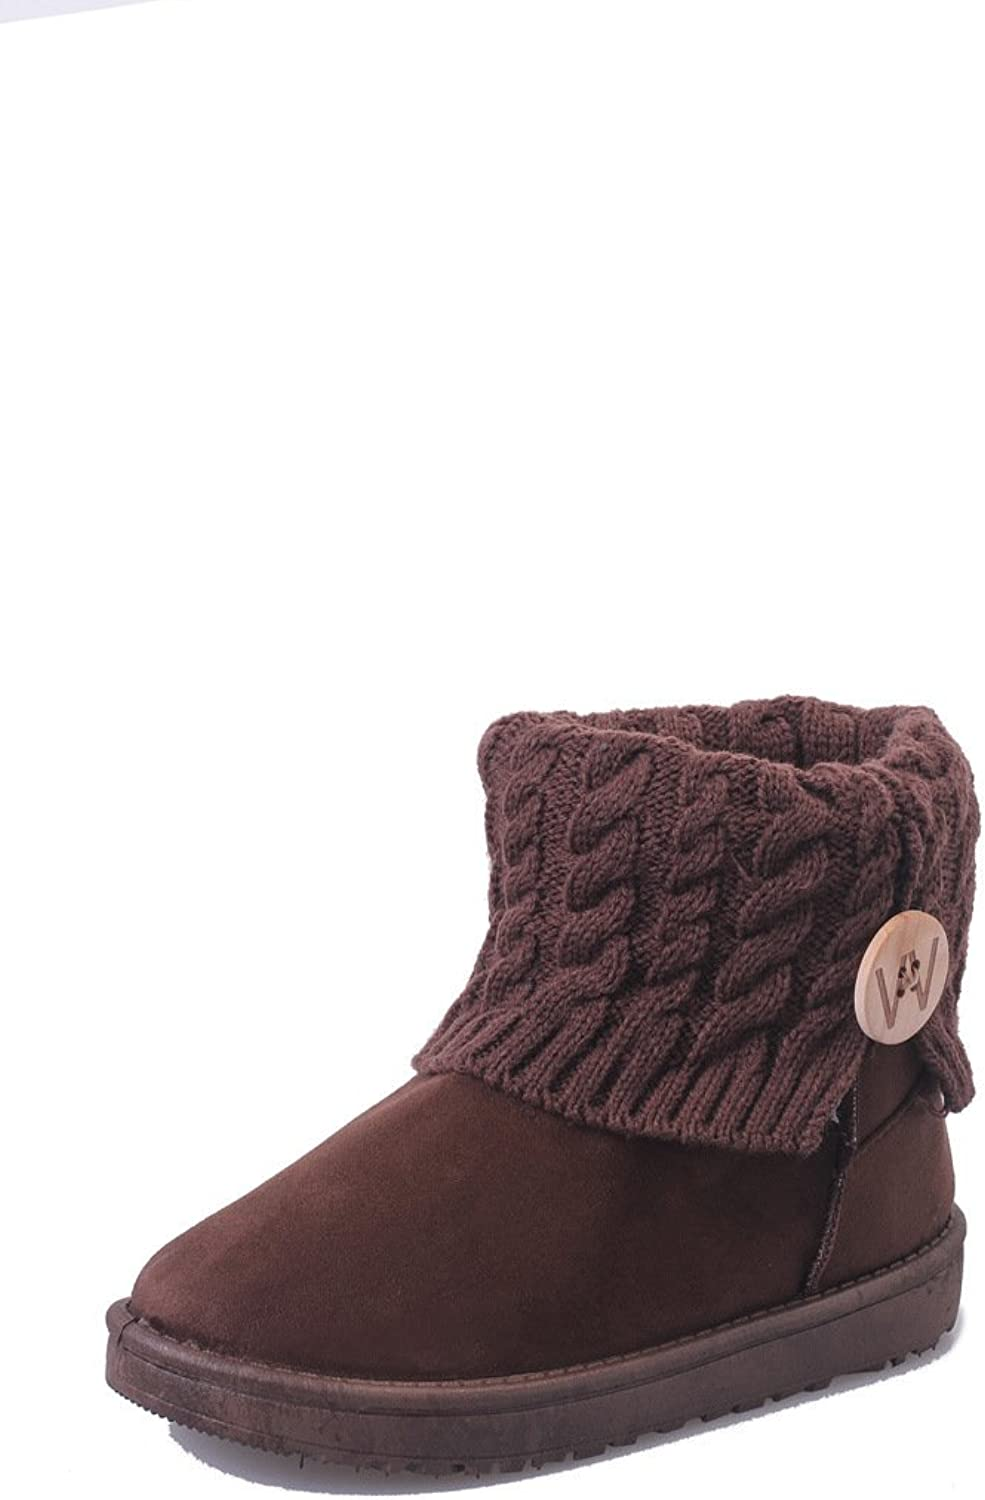 WYMBS Women's shoes Plush Snow Boots Keep Warm Thickening Leisure Short Boots